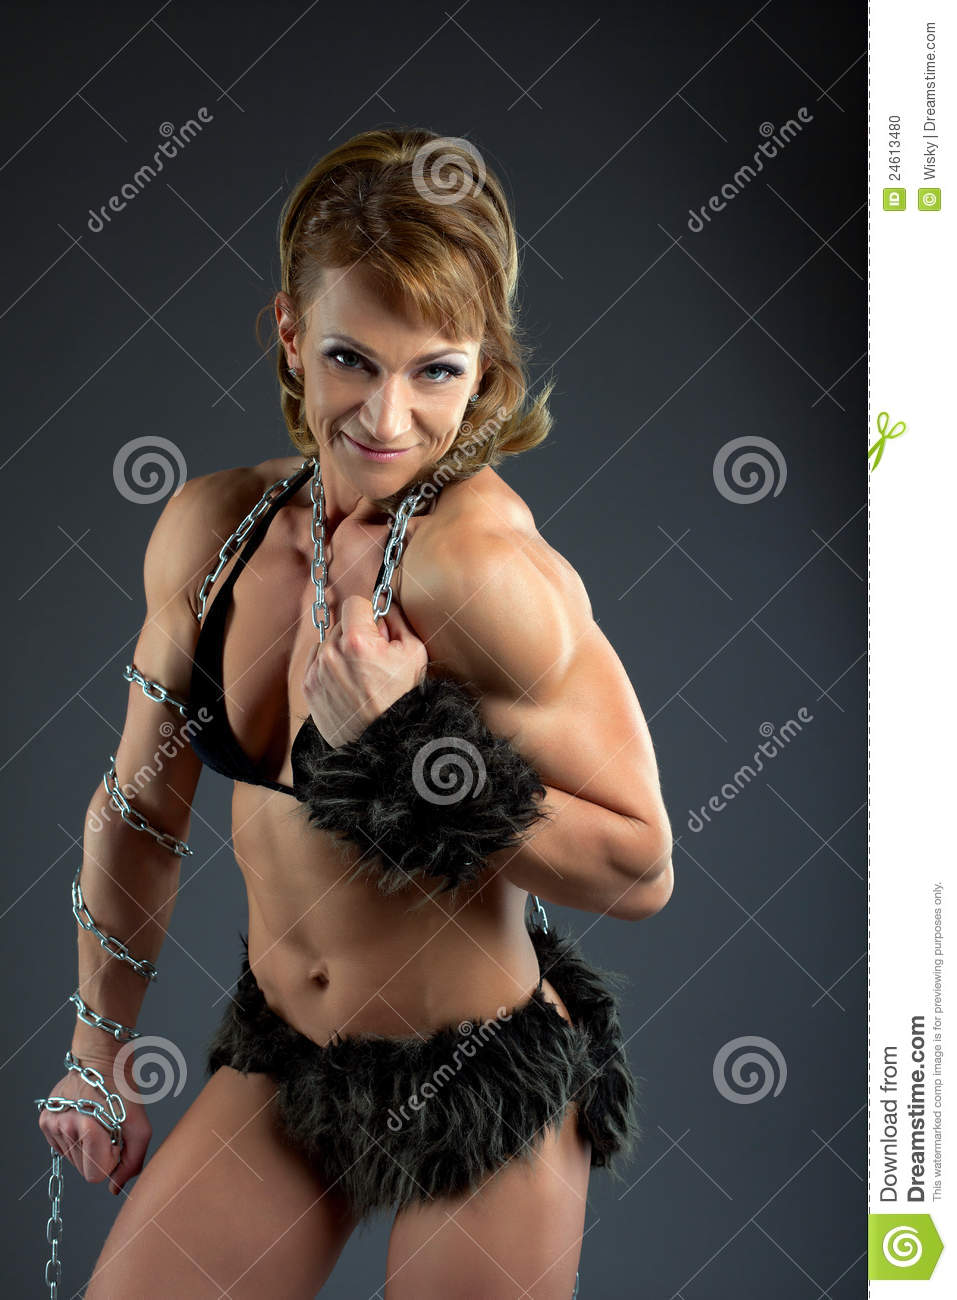 Strong athletic woman body builder posing in amazon fur costume with